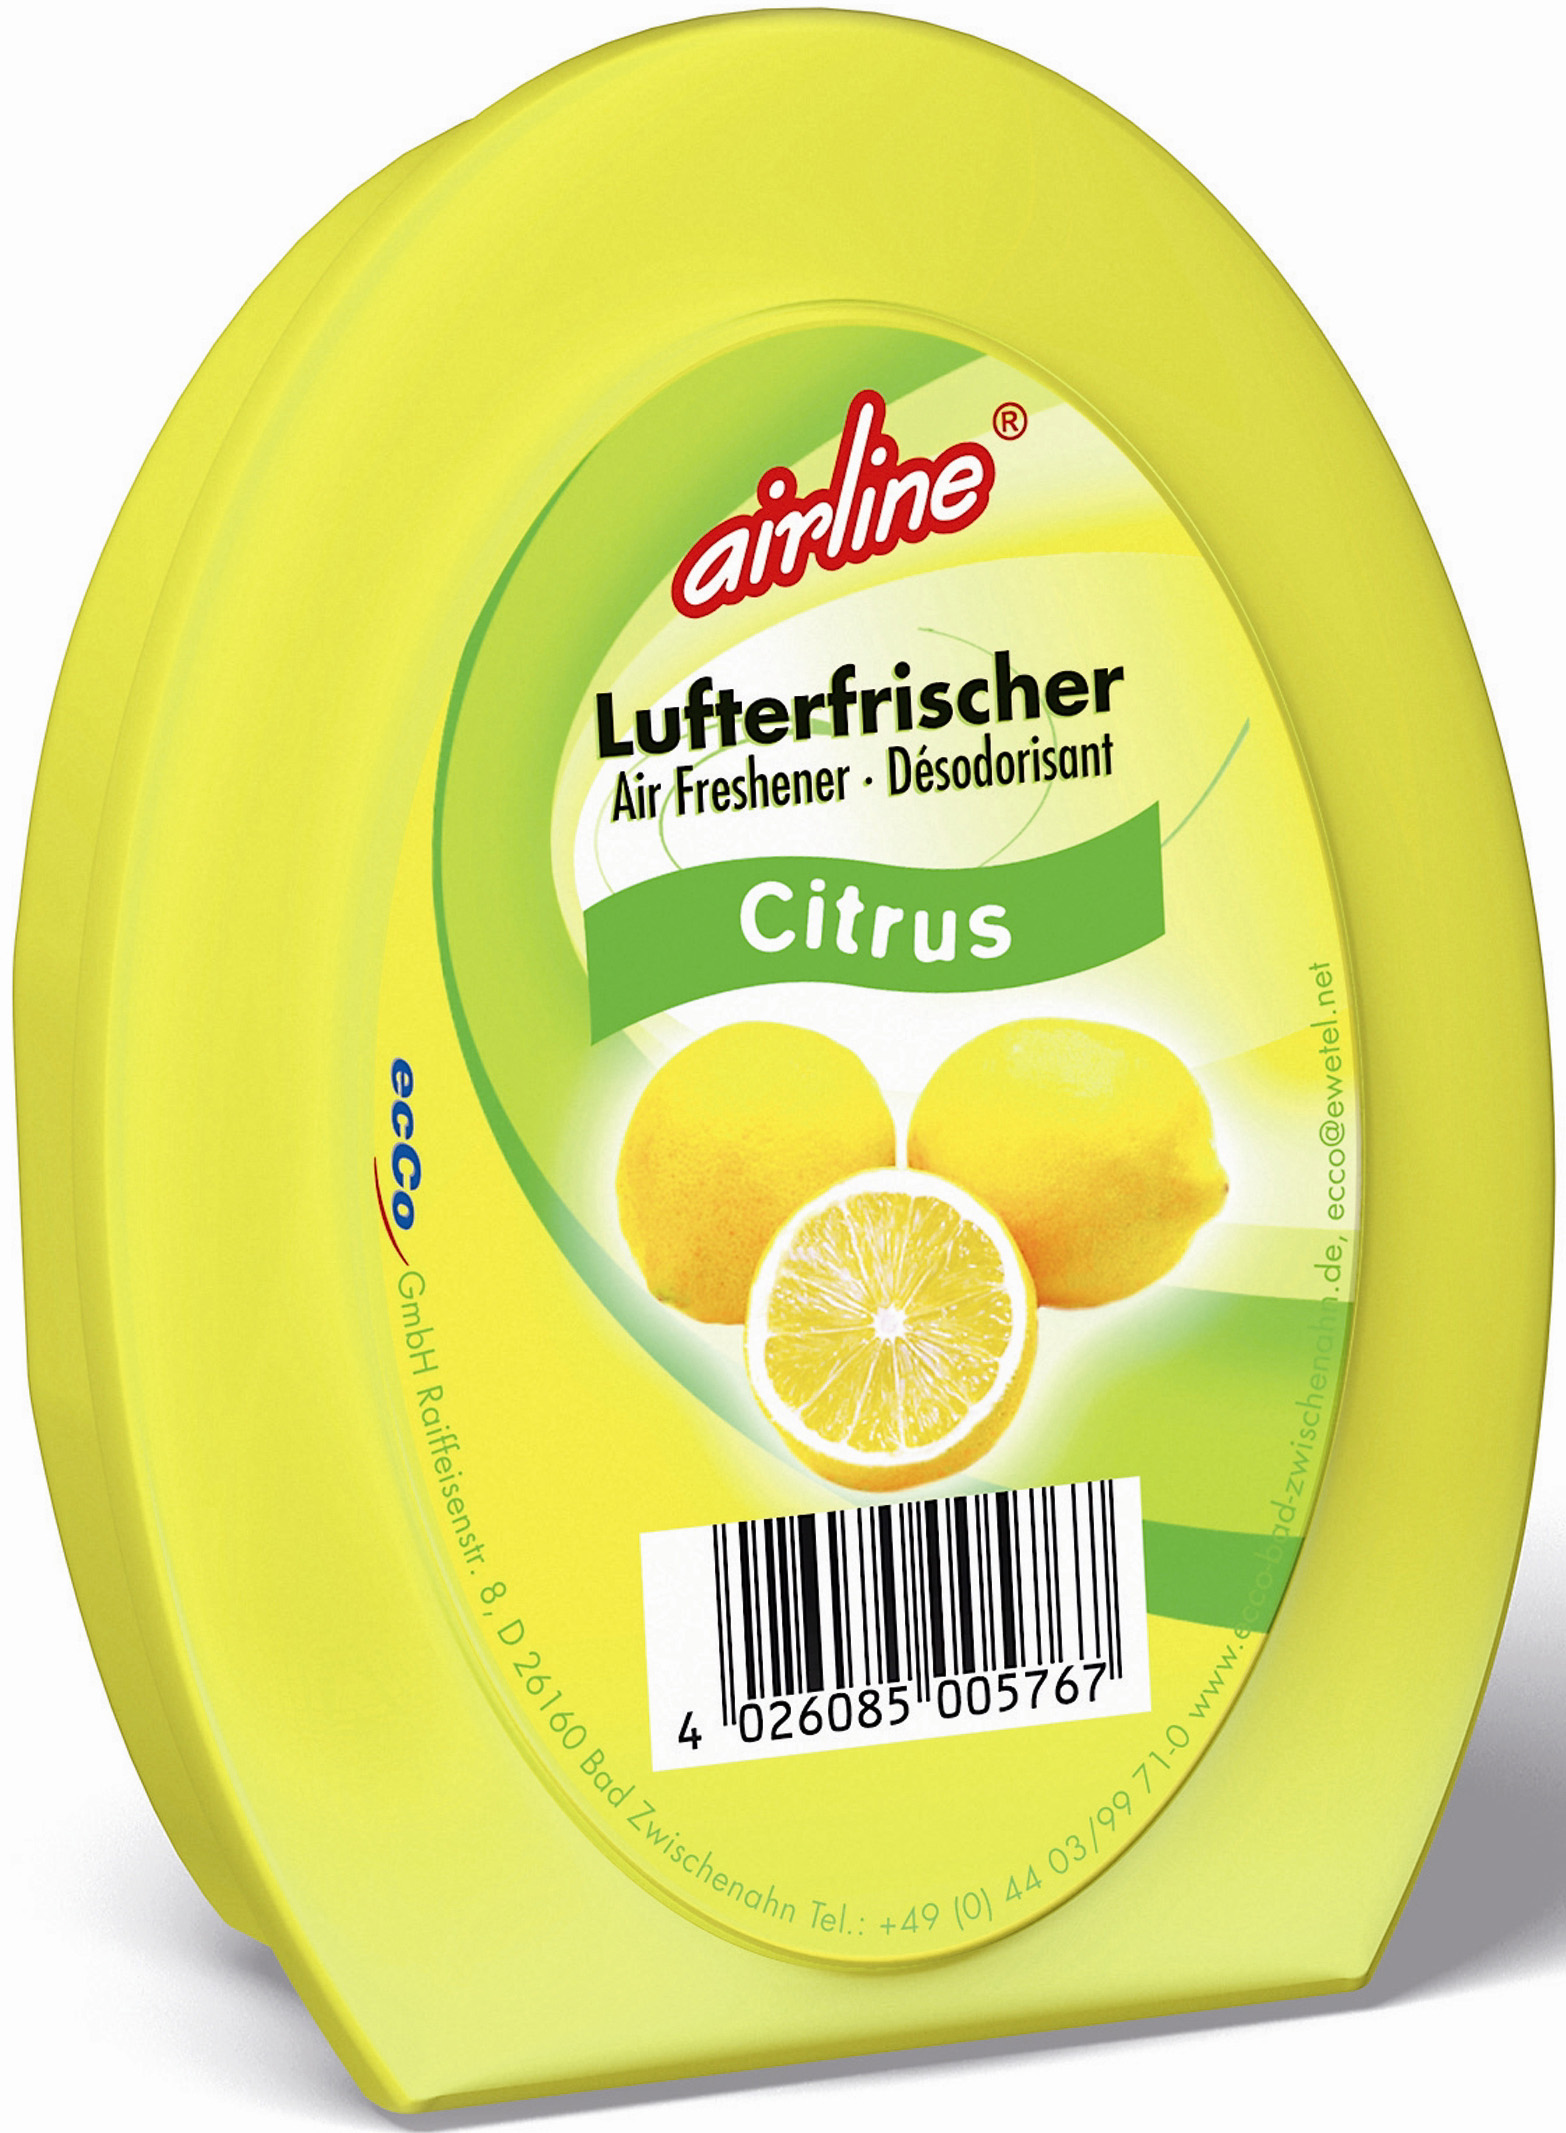 00576 - airline Duftgel 150 g -Citrus